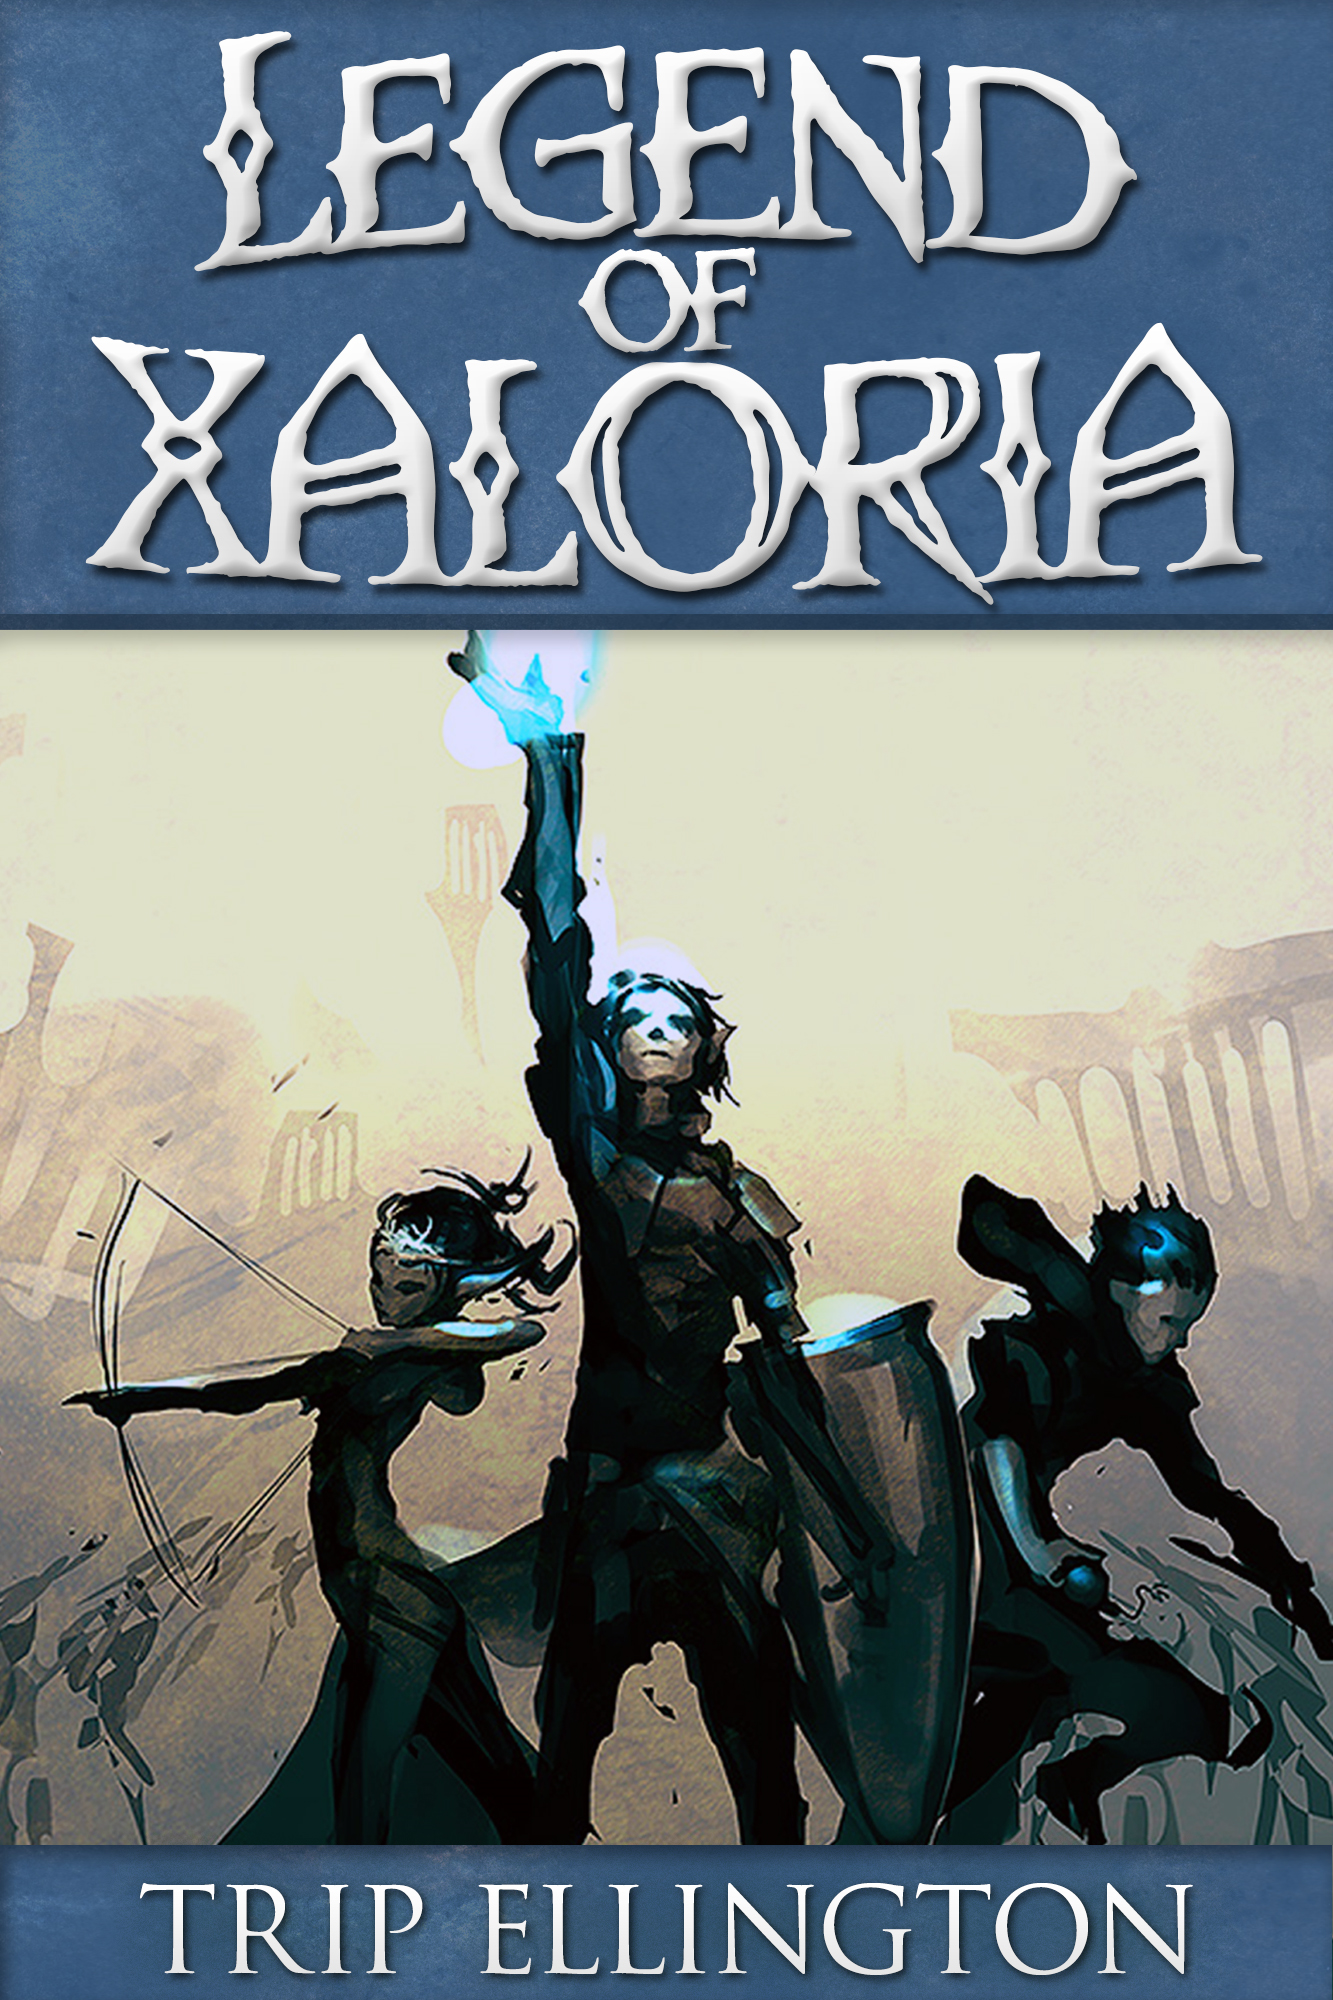 Legend of Xaloria